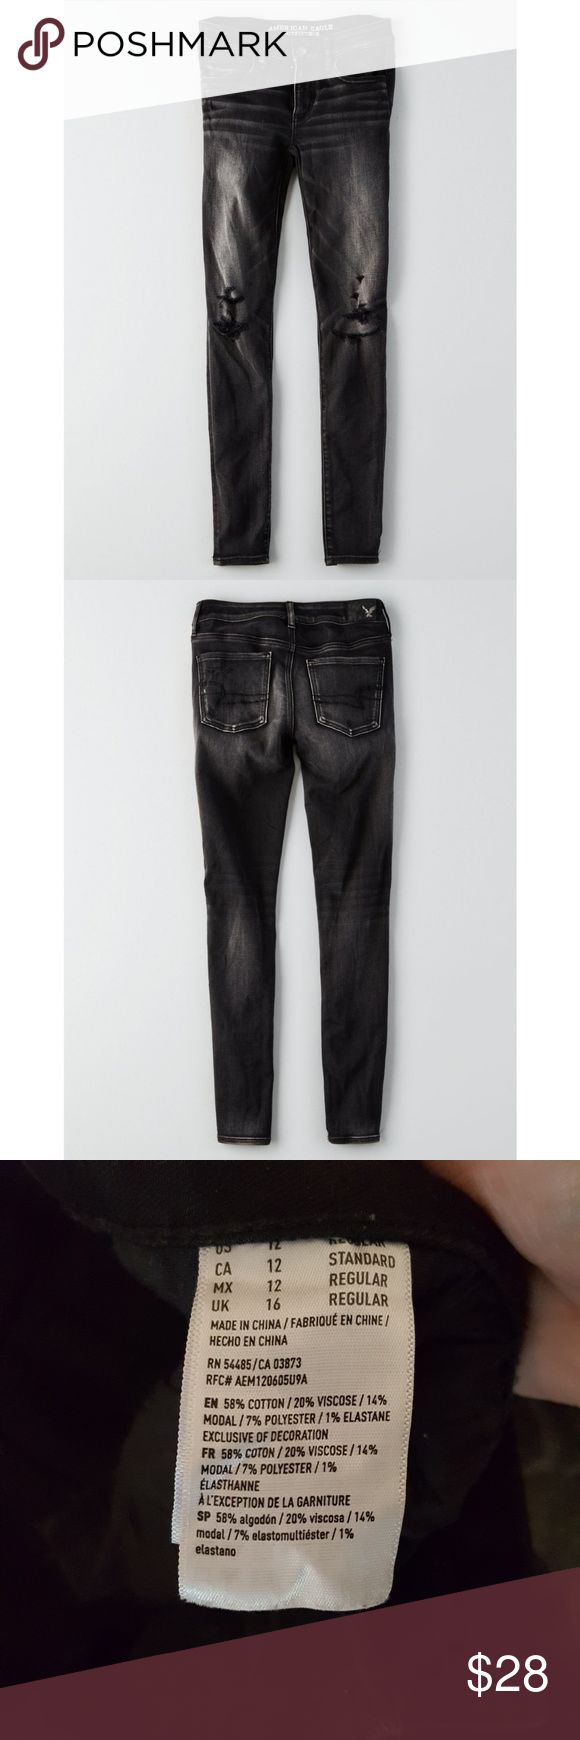 AEO || Denim X Jeggings Black Charcoal Regular Super stretch. Regular length. Distressed.  Black charcoal. Worn about 2 times. Line dried. American Eagle Outfitters Jeans